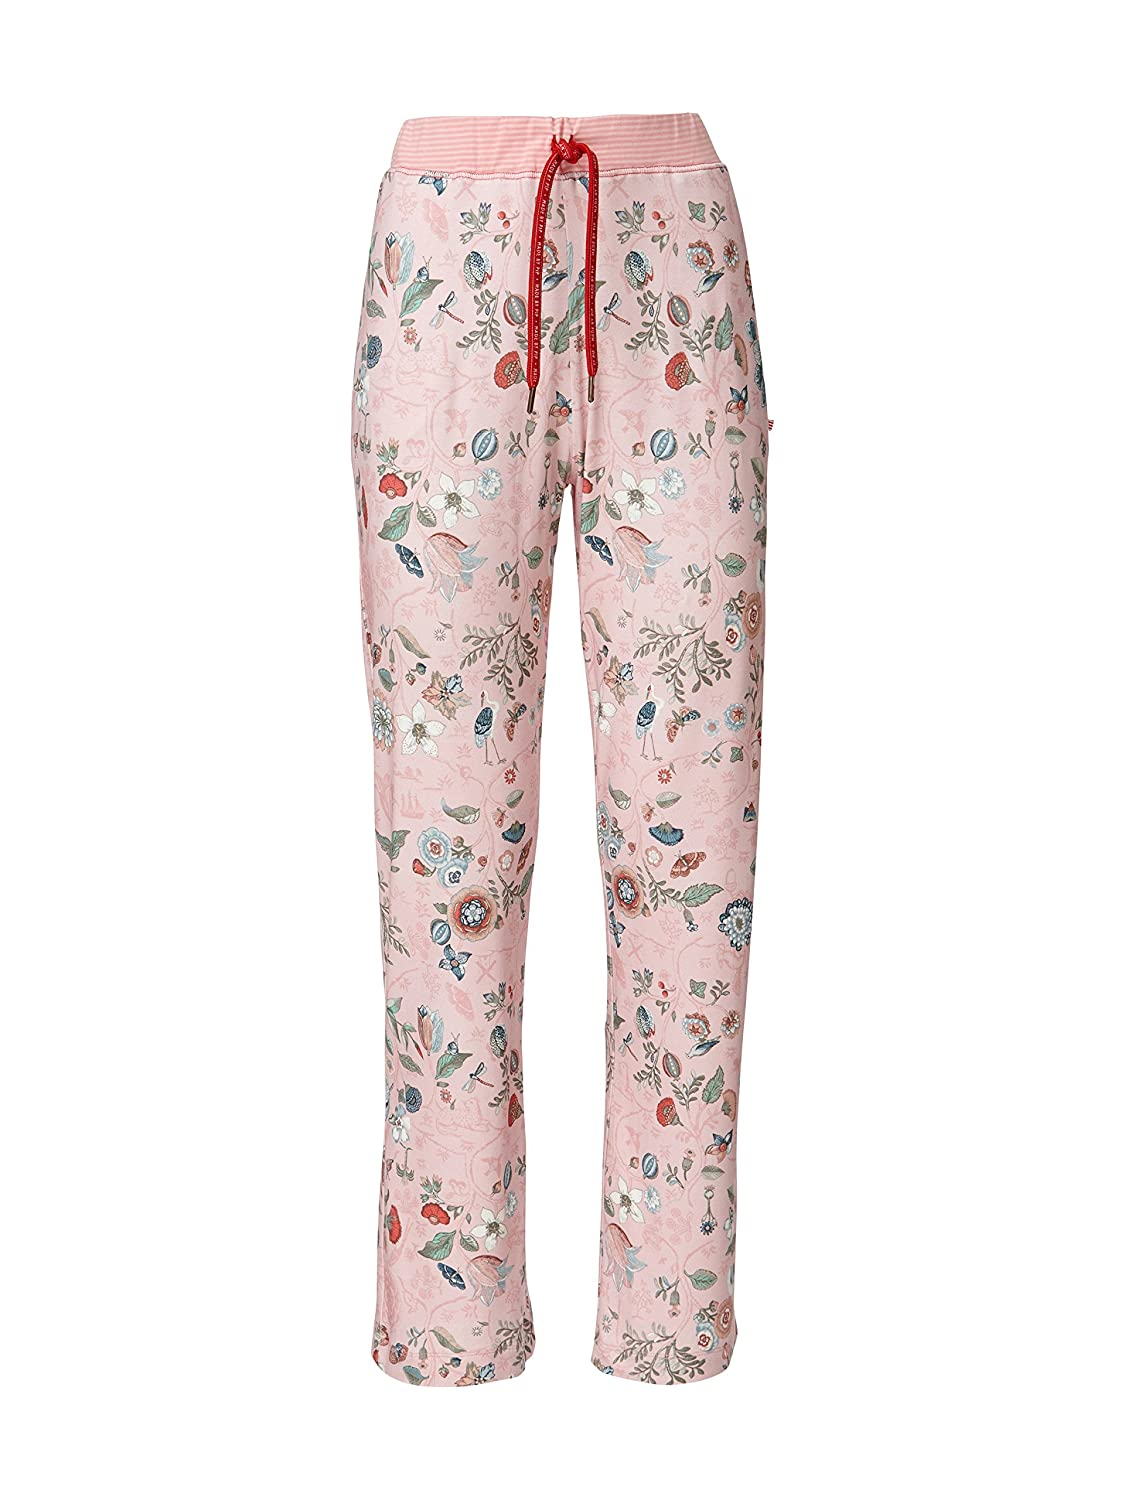 Pip Babbet Spring to life Trousers / Schlafanzughose Long - blue